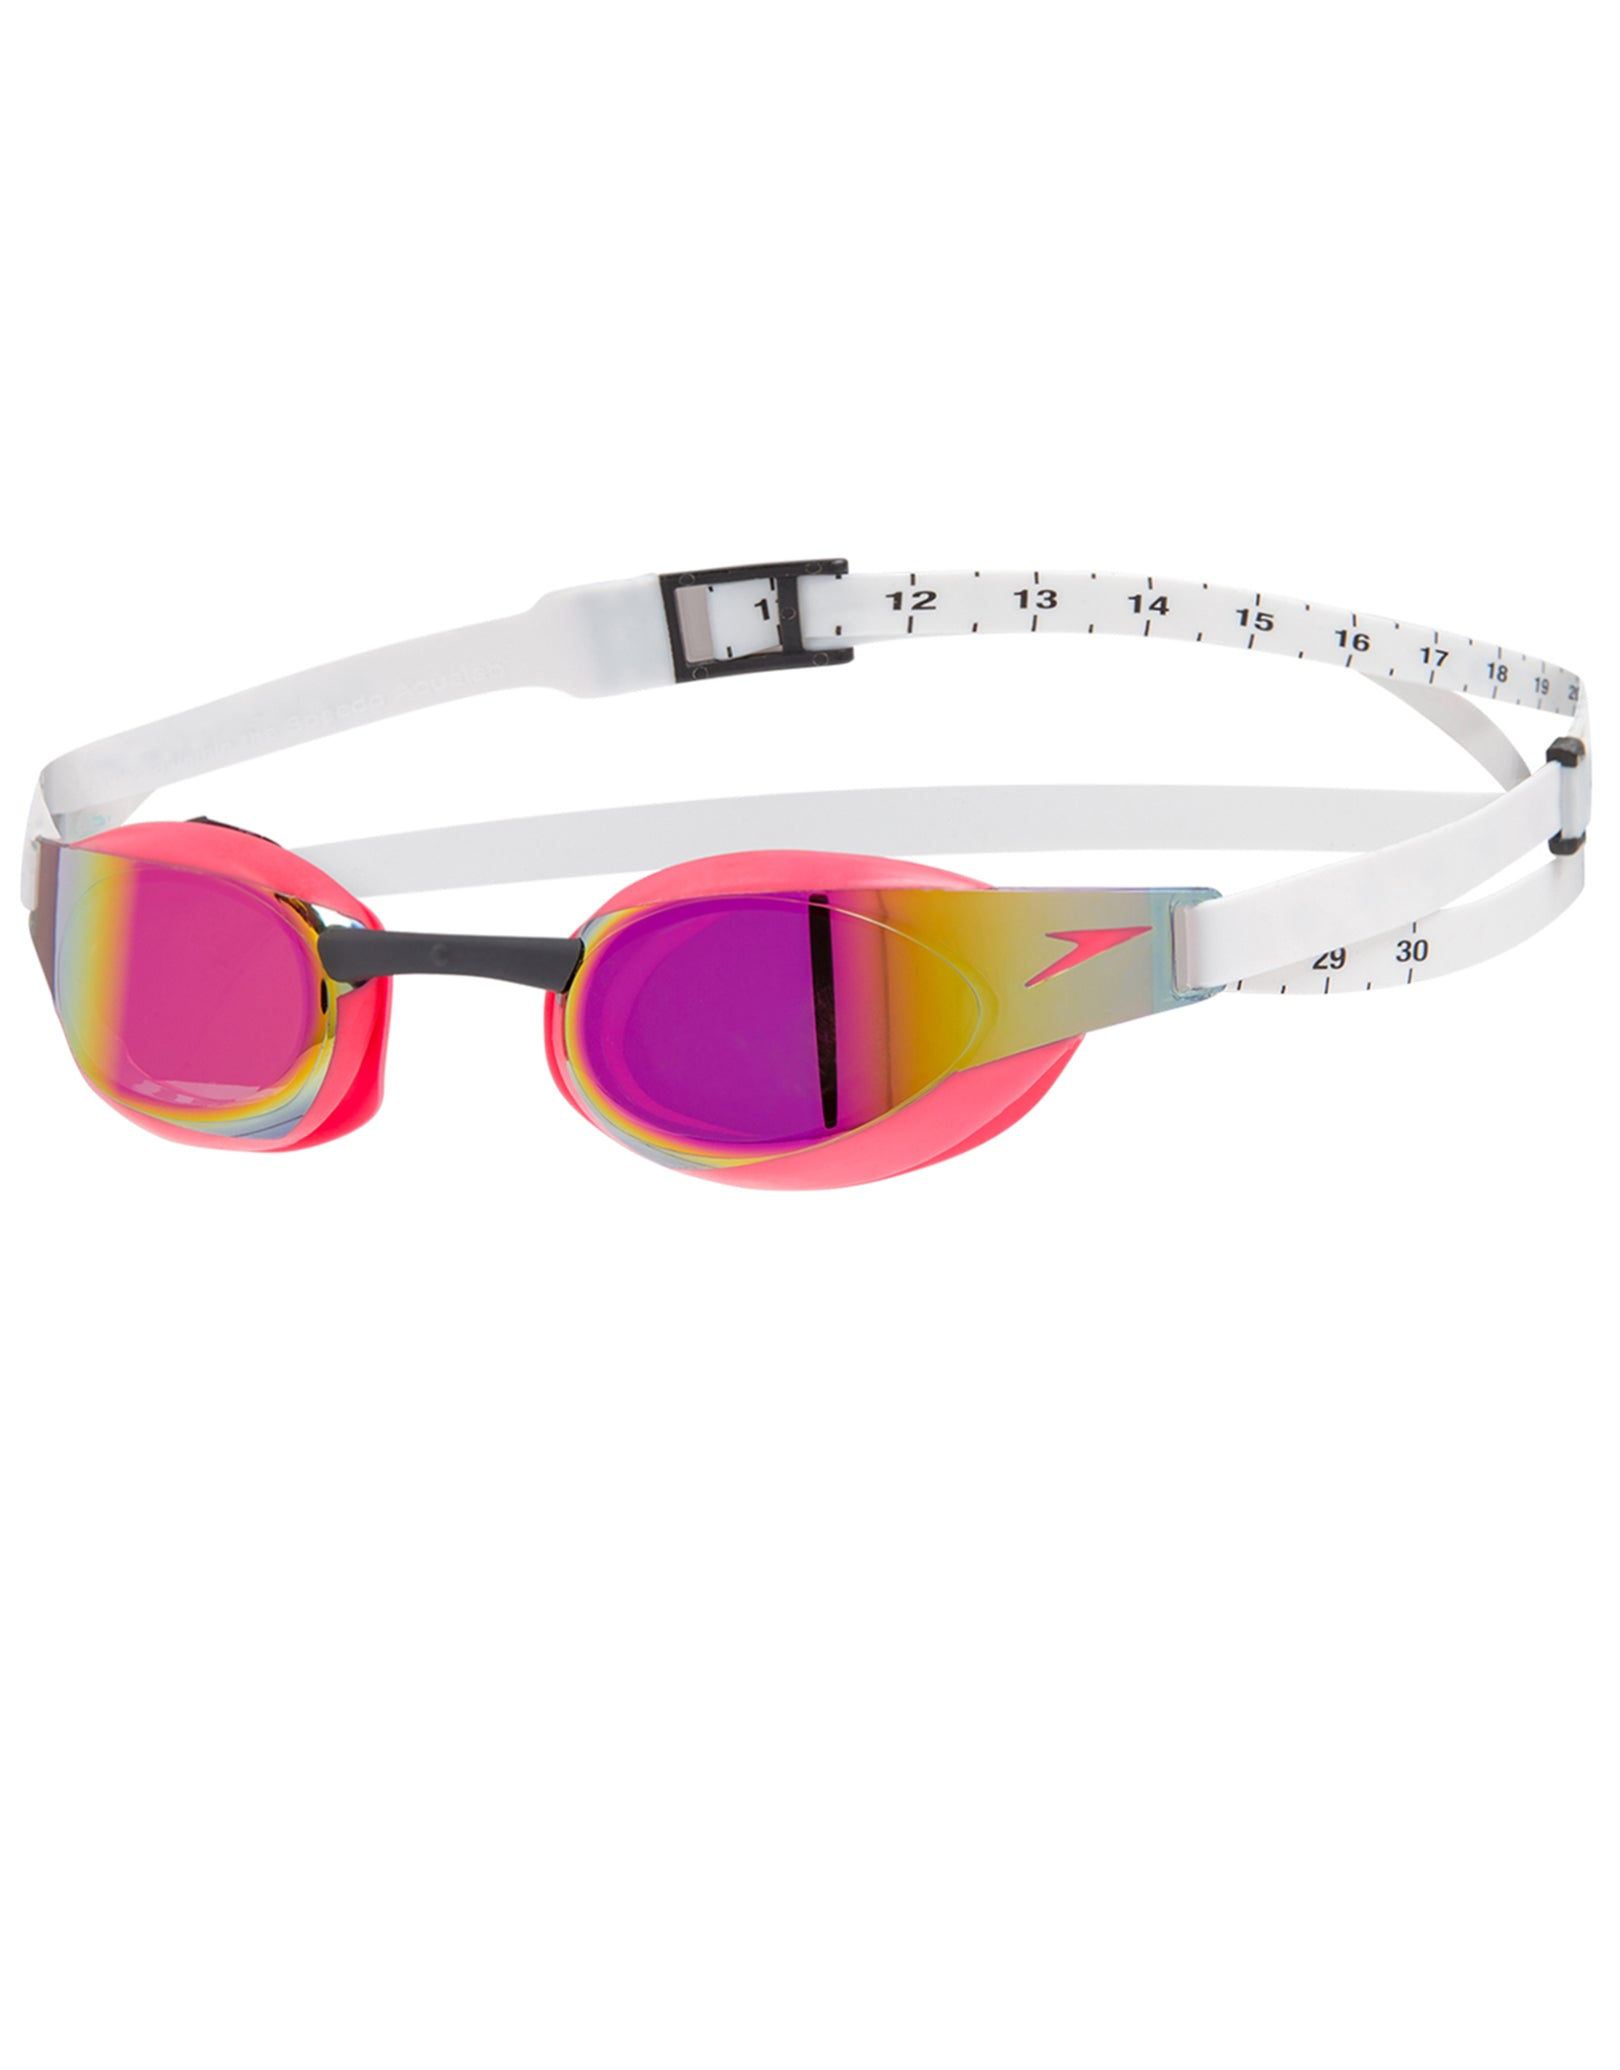 c9d02d71060 Speedo Fastskin Elite Mirror Goggle - Psycho Red and White